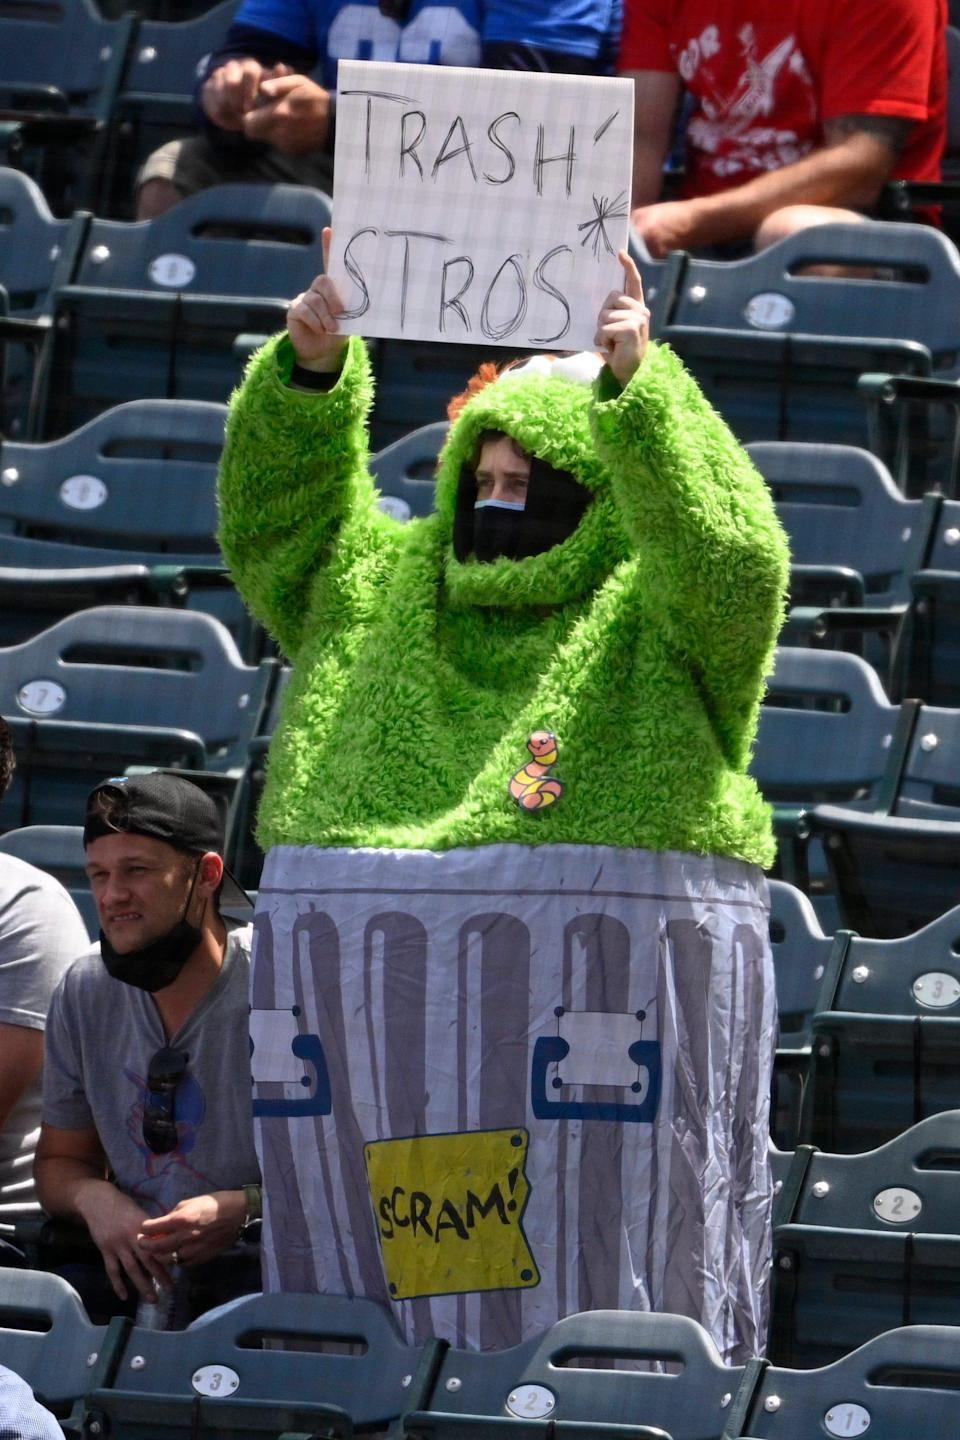 An Angels fan holds up a sign wearing an Oscar the Grouch costume during a game against the Astros at Angel Stadium.